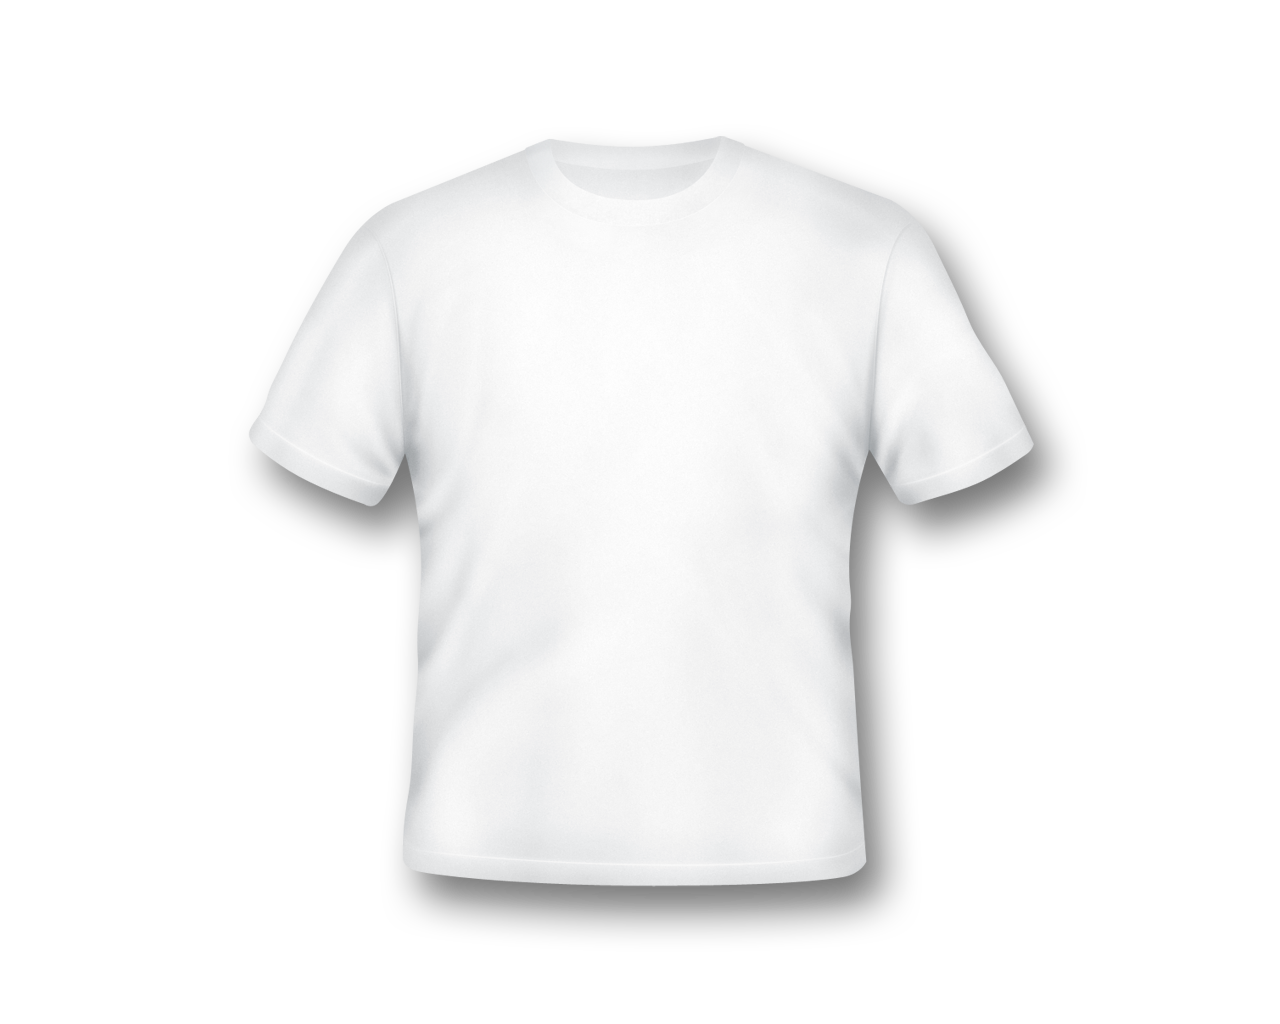 Blank black t shirt png. Images transparent free download